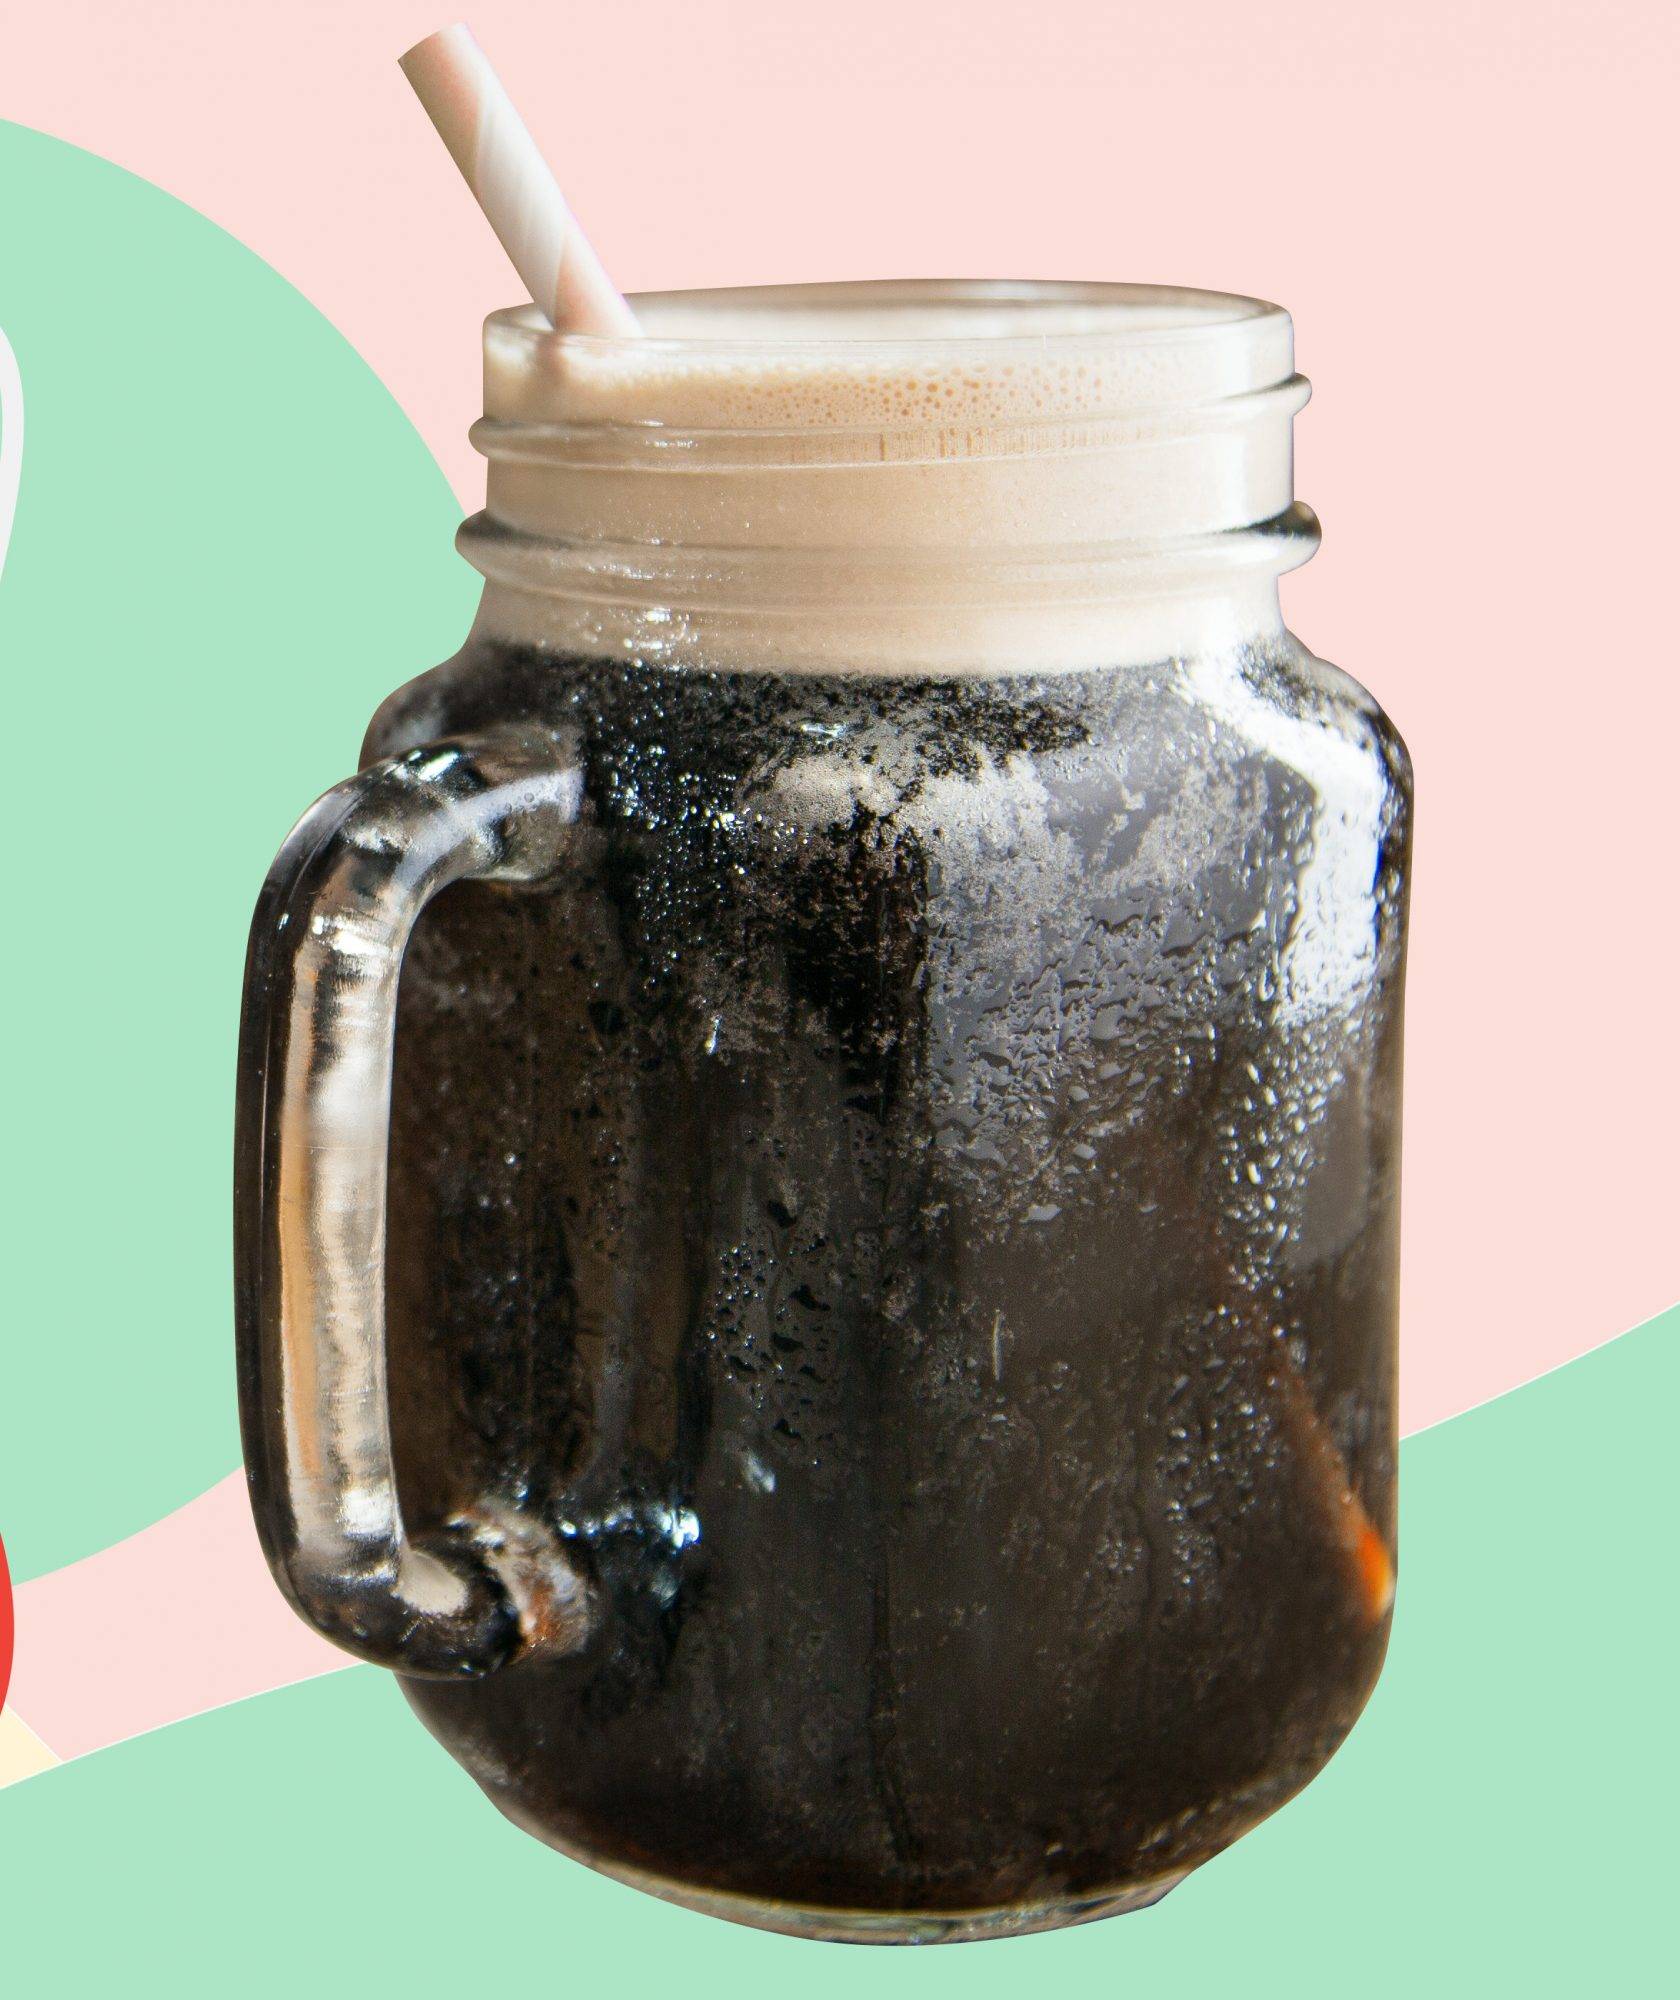 If Cold Brew Coffee Is Your Caffeinated Drink of Choice, Here's What You Should Know